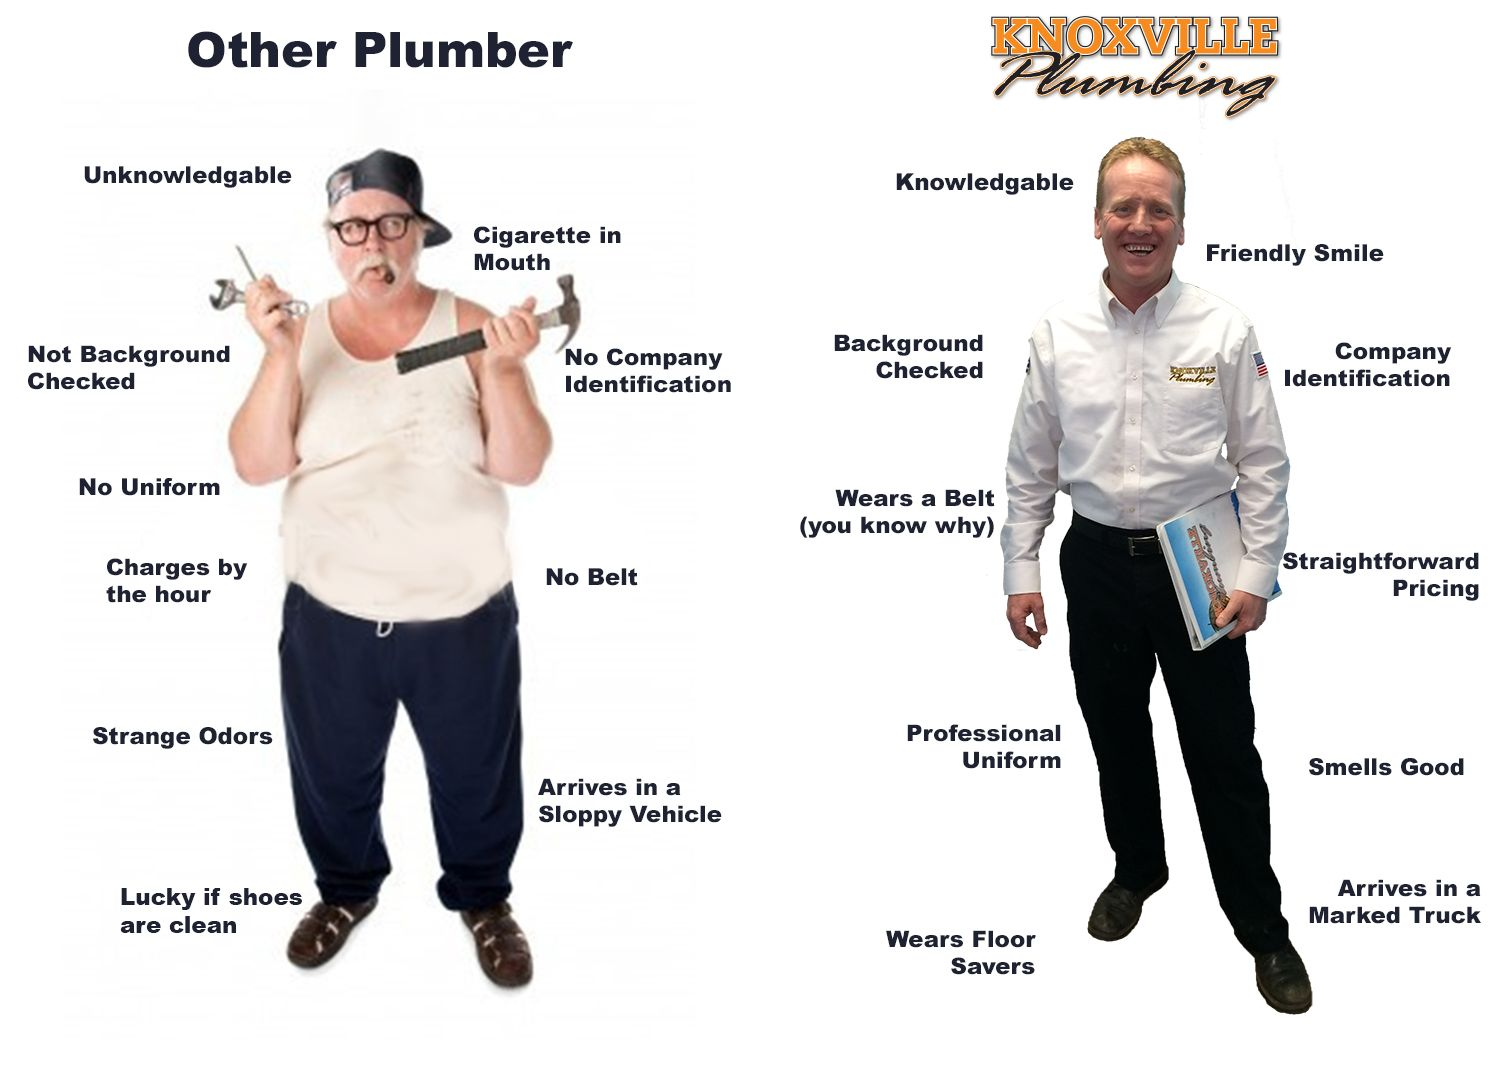 Which plumber do you want? Plumber, Knoxville